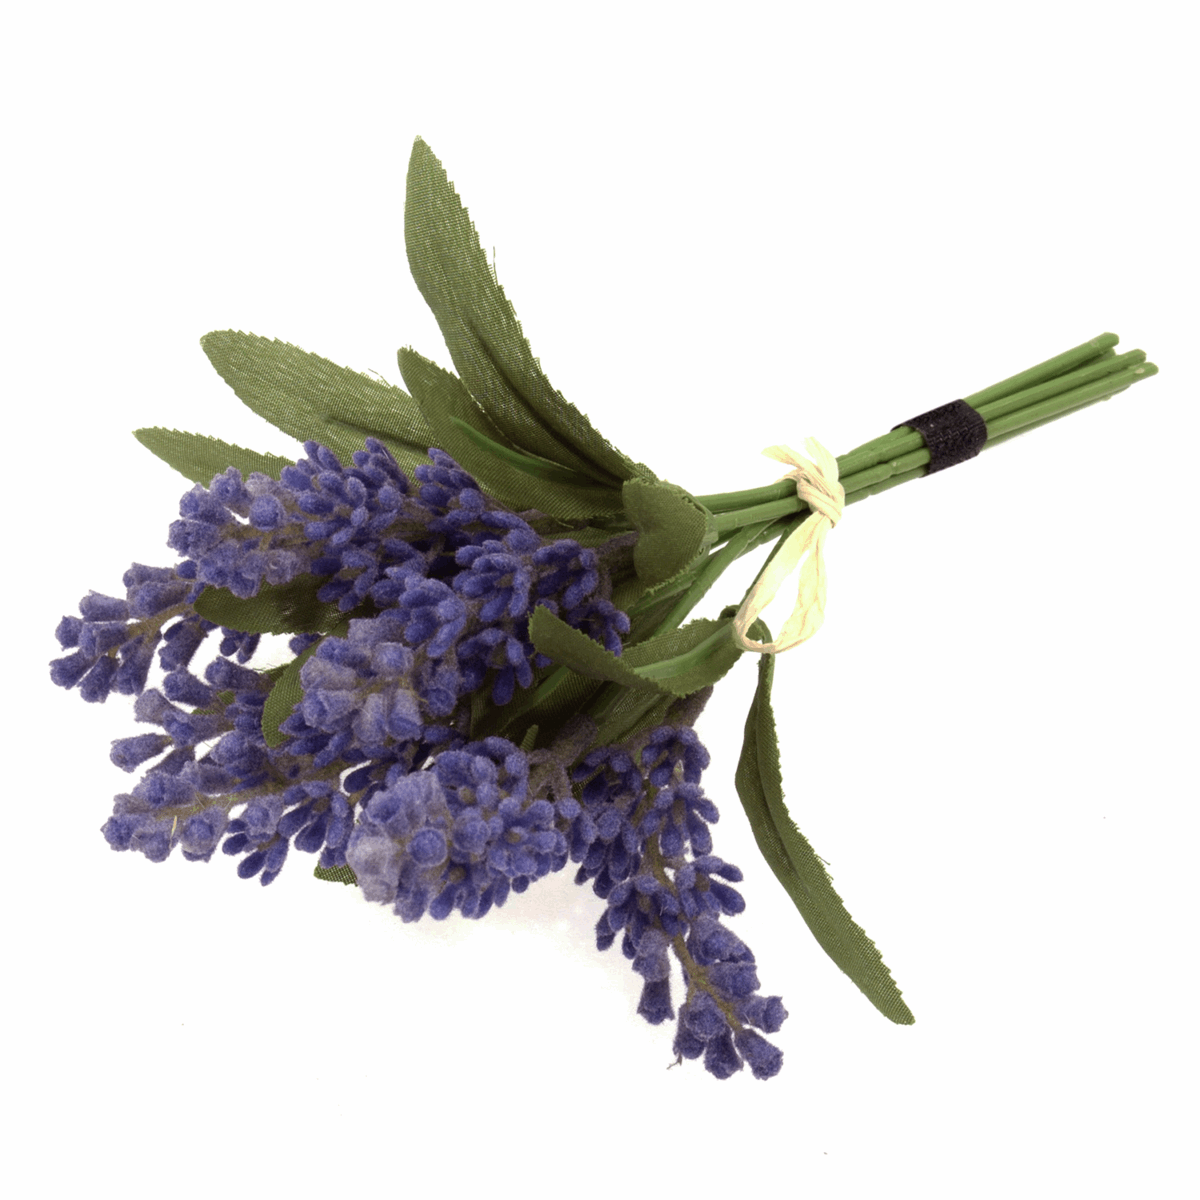 Picture of Flowers: Lavender Bunch x 7 Stems with Raffia Tie: 17cm